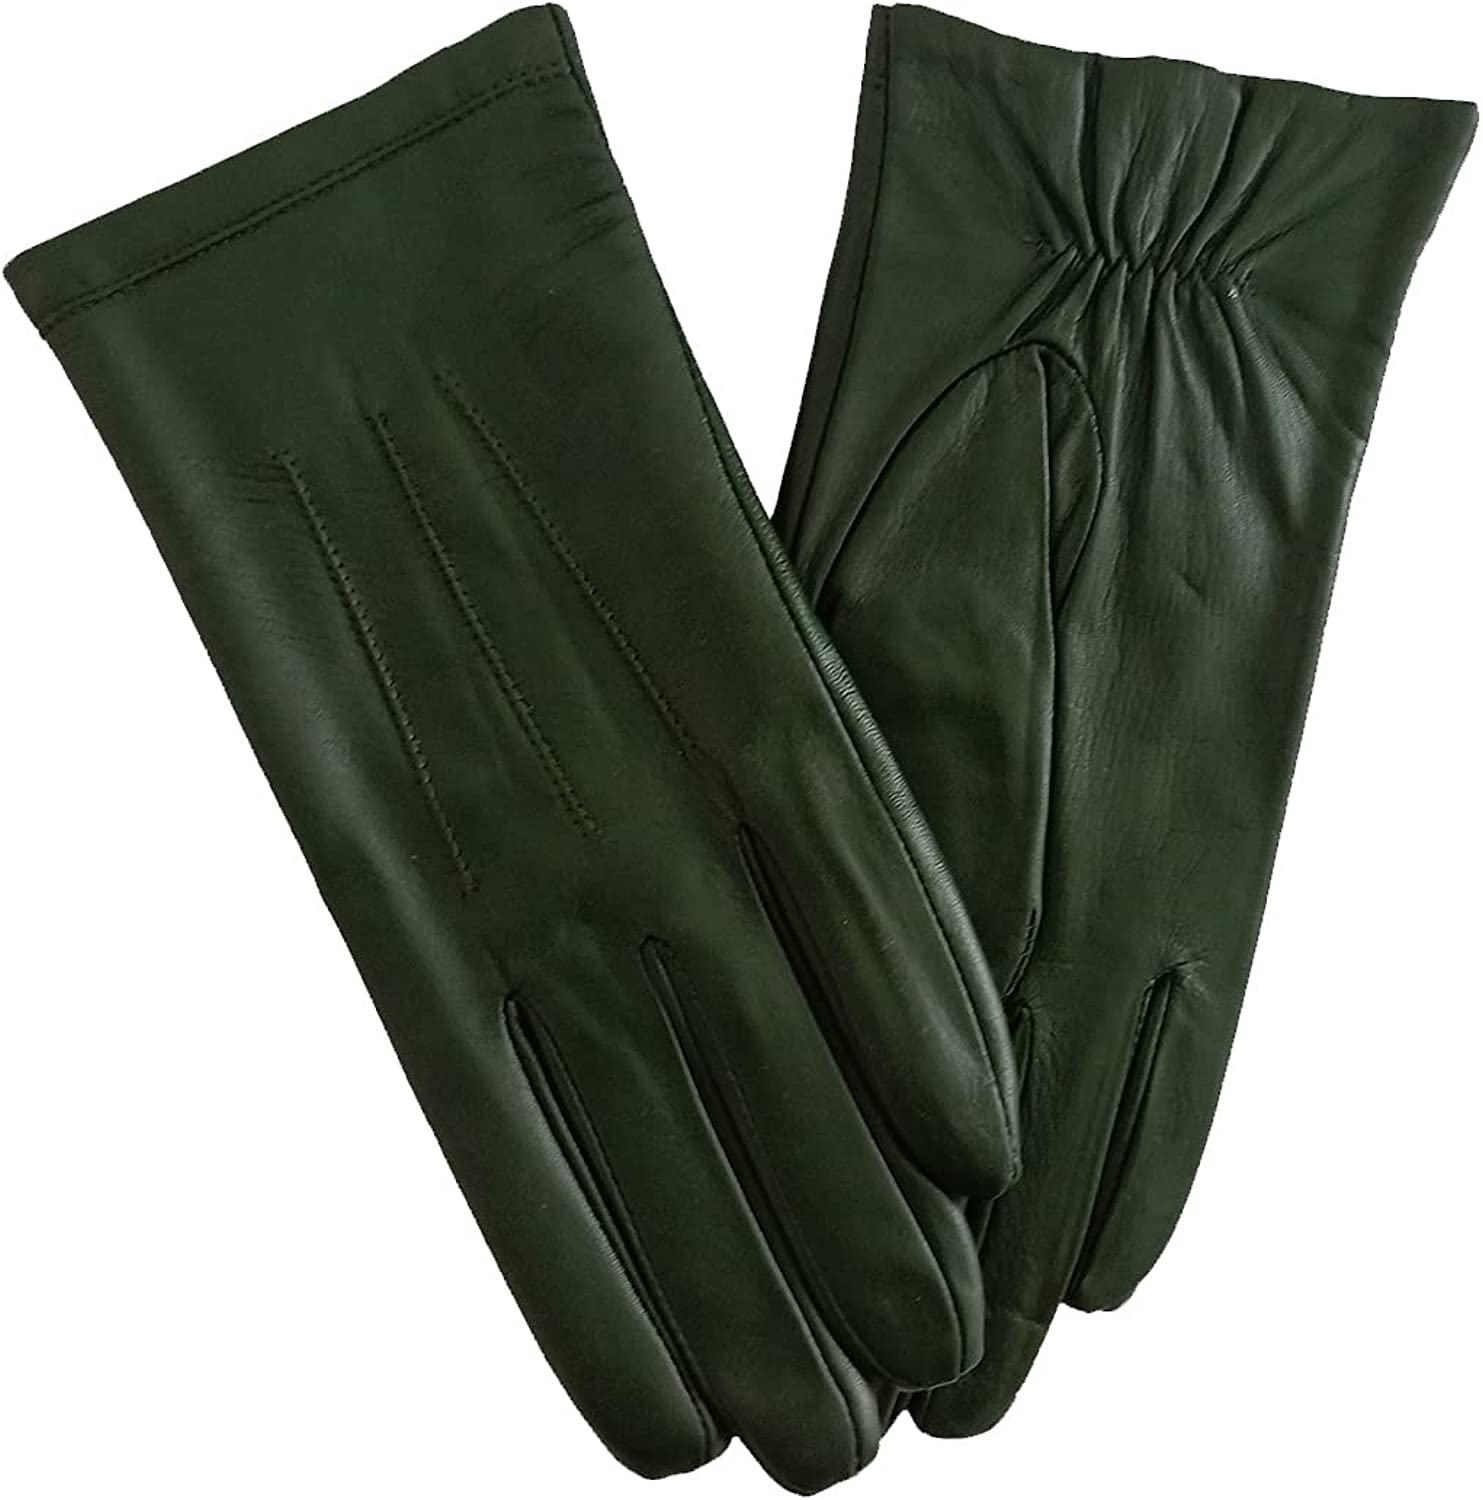 Genuine Leather Gloves for Women Warm driving in Winter Classic Perfect Appearance Touchscreen Texting